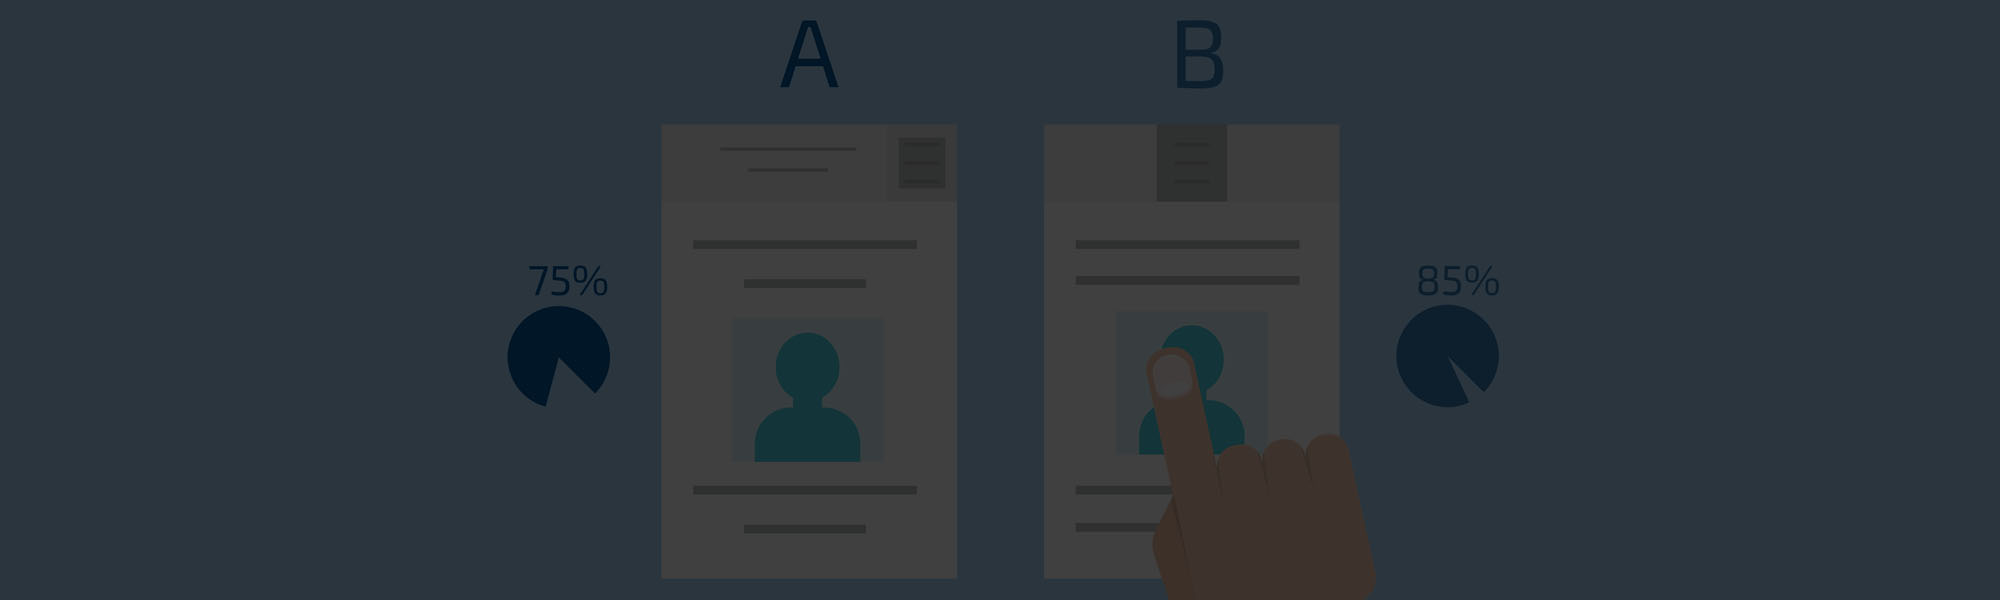 The artful science of Social A/B testing: How thinking Bayesian brings the clicks